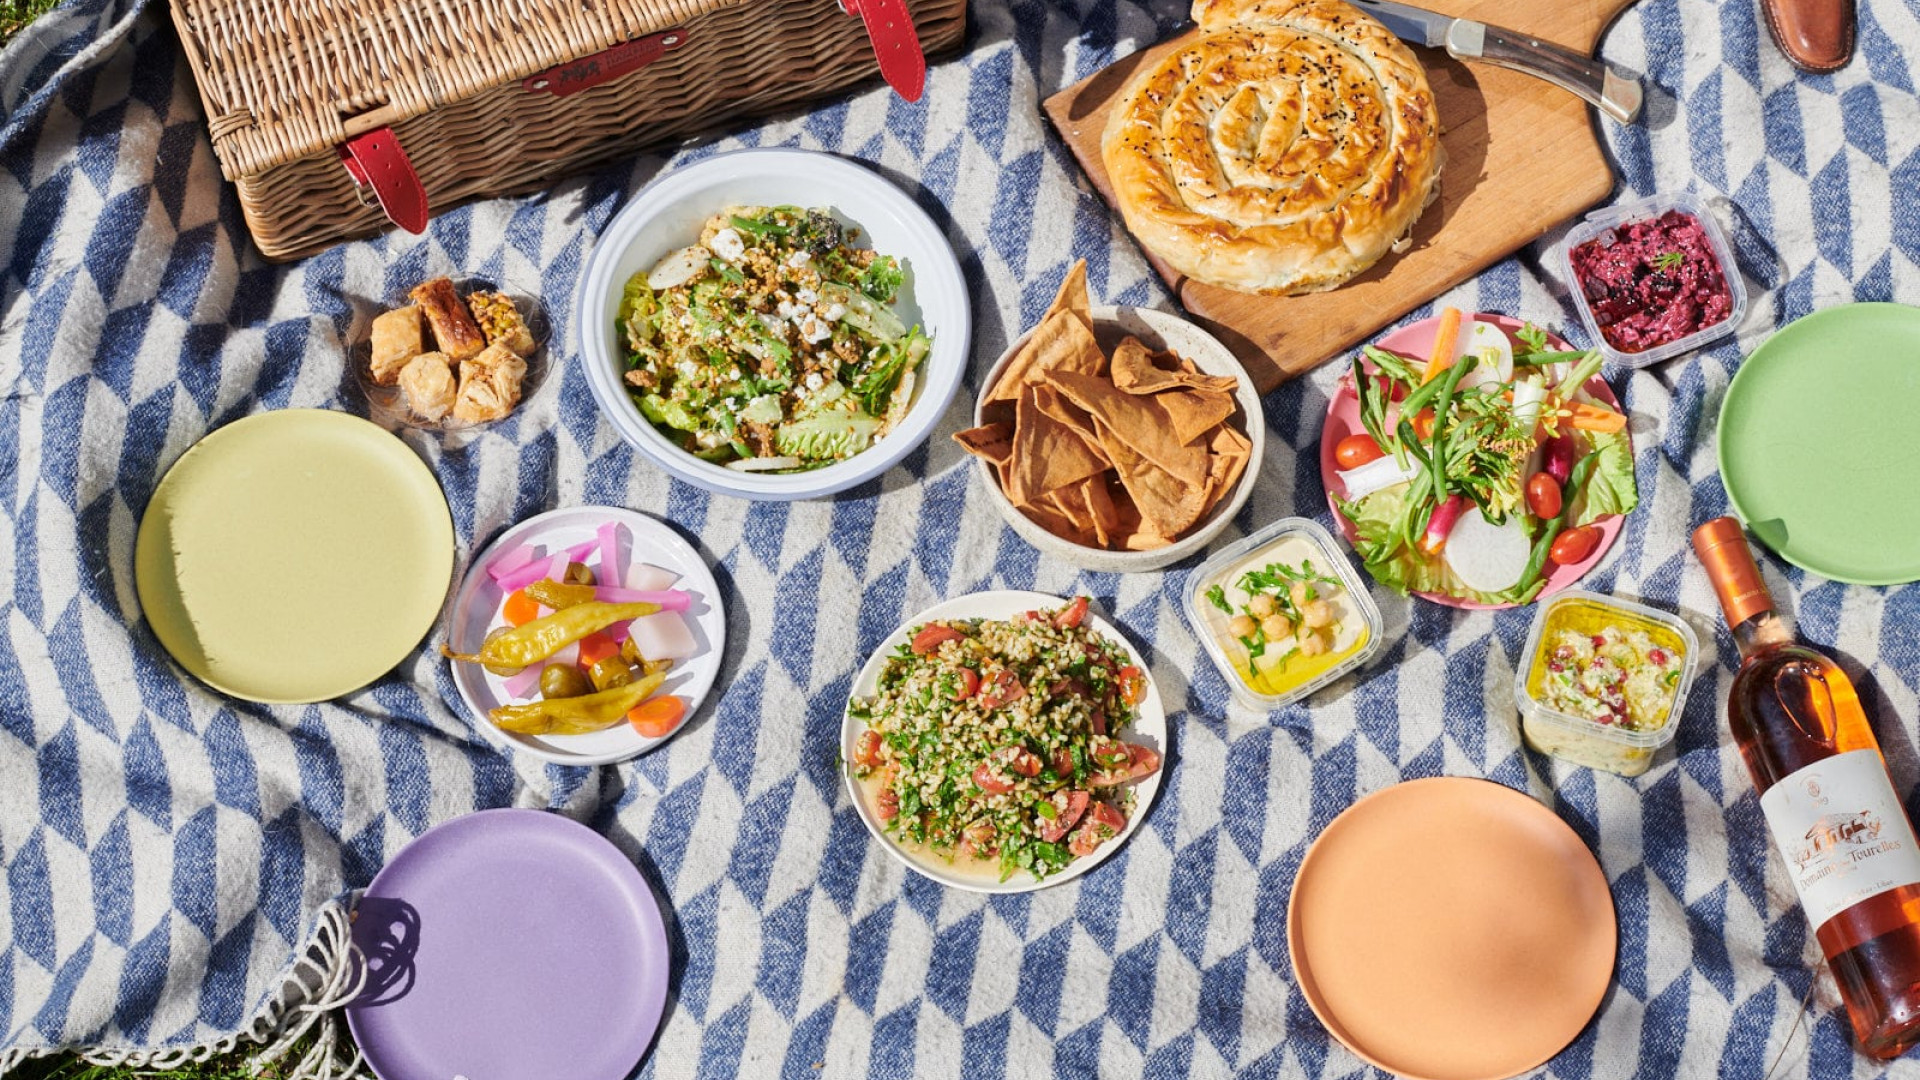 This is a picture of the picnic box from Arabica, including a Boregi, salad and hummus.